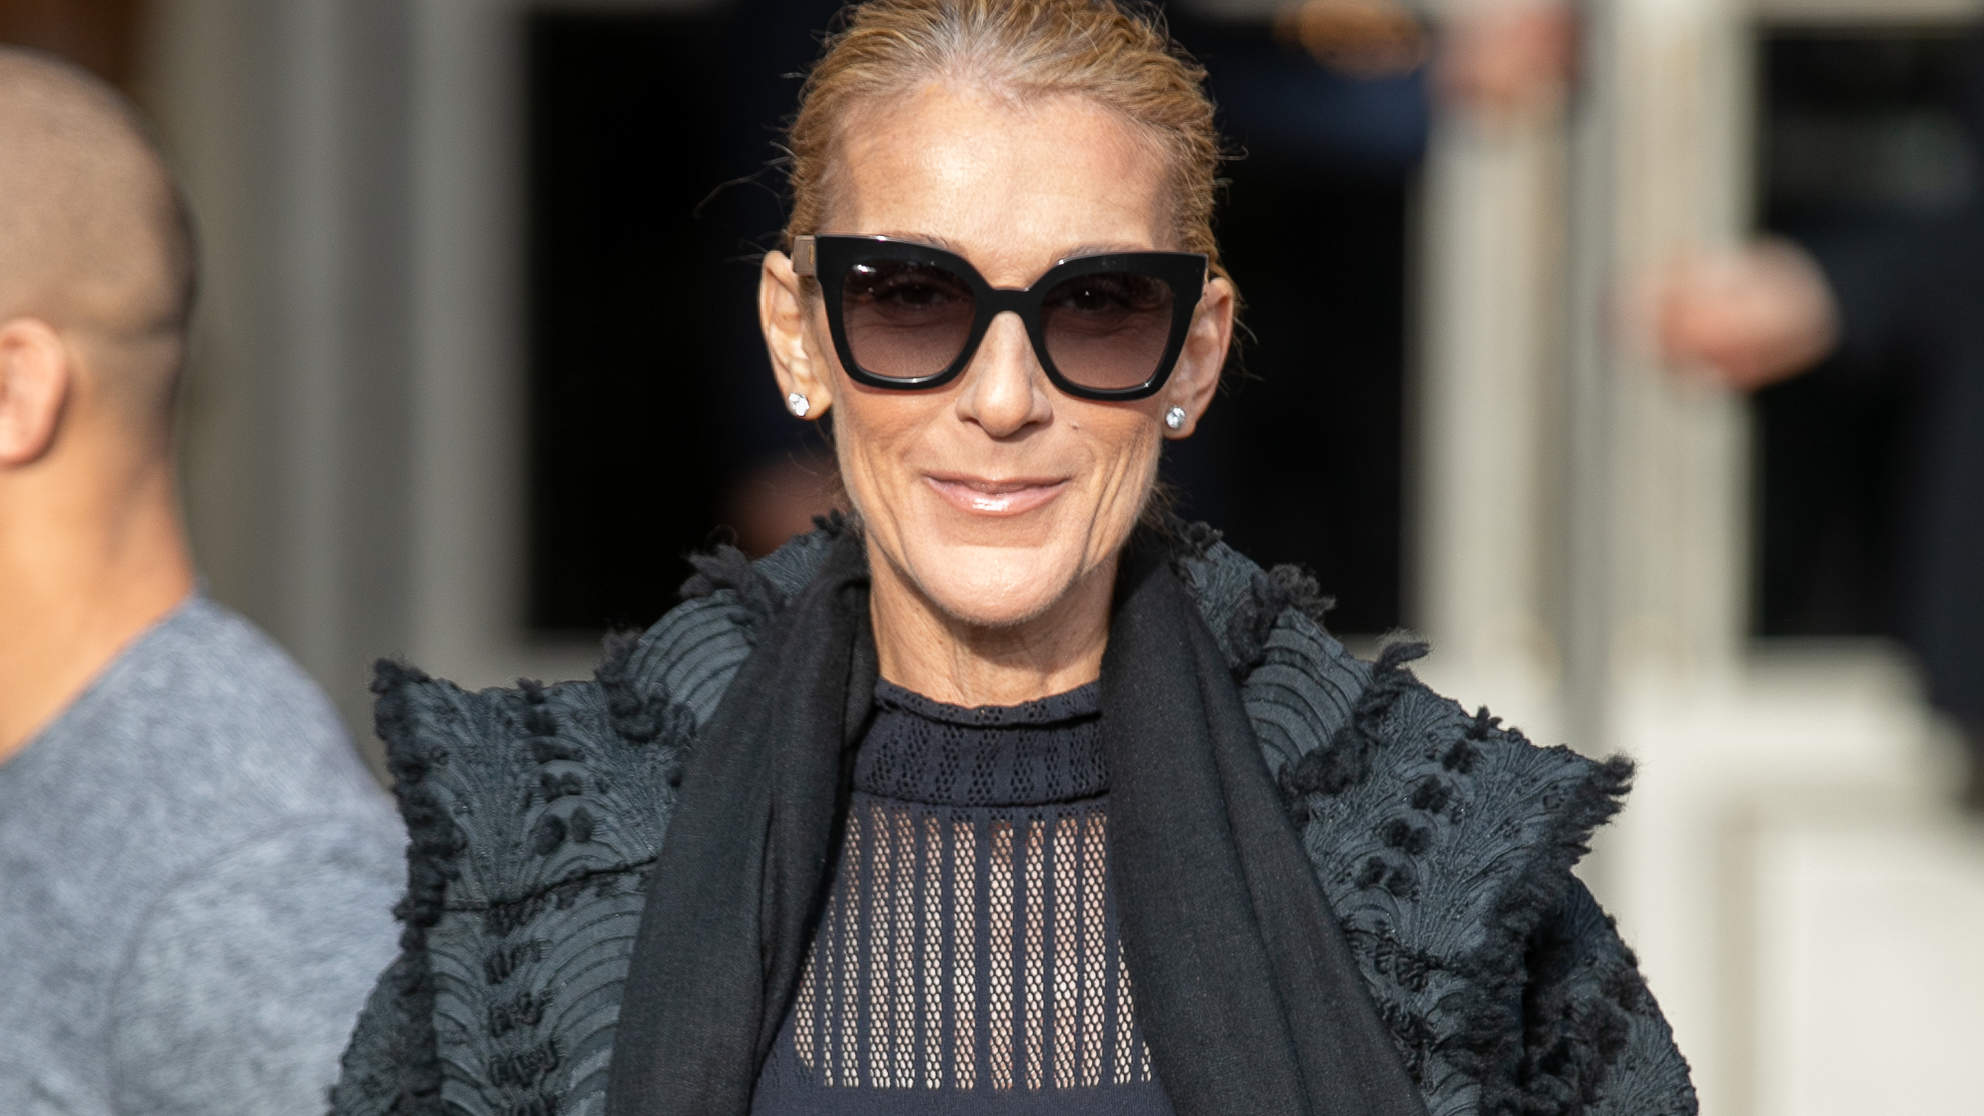 Celine Dion Shares the Reason for Her Seemingly Dramatic Weight Loss